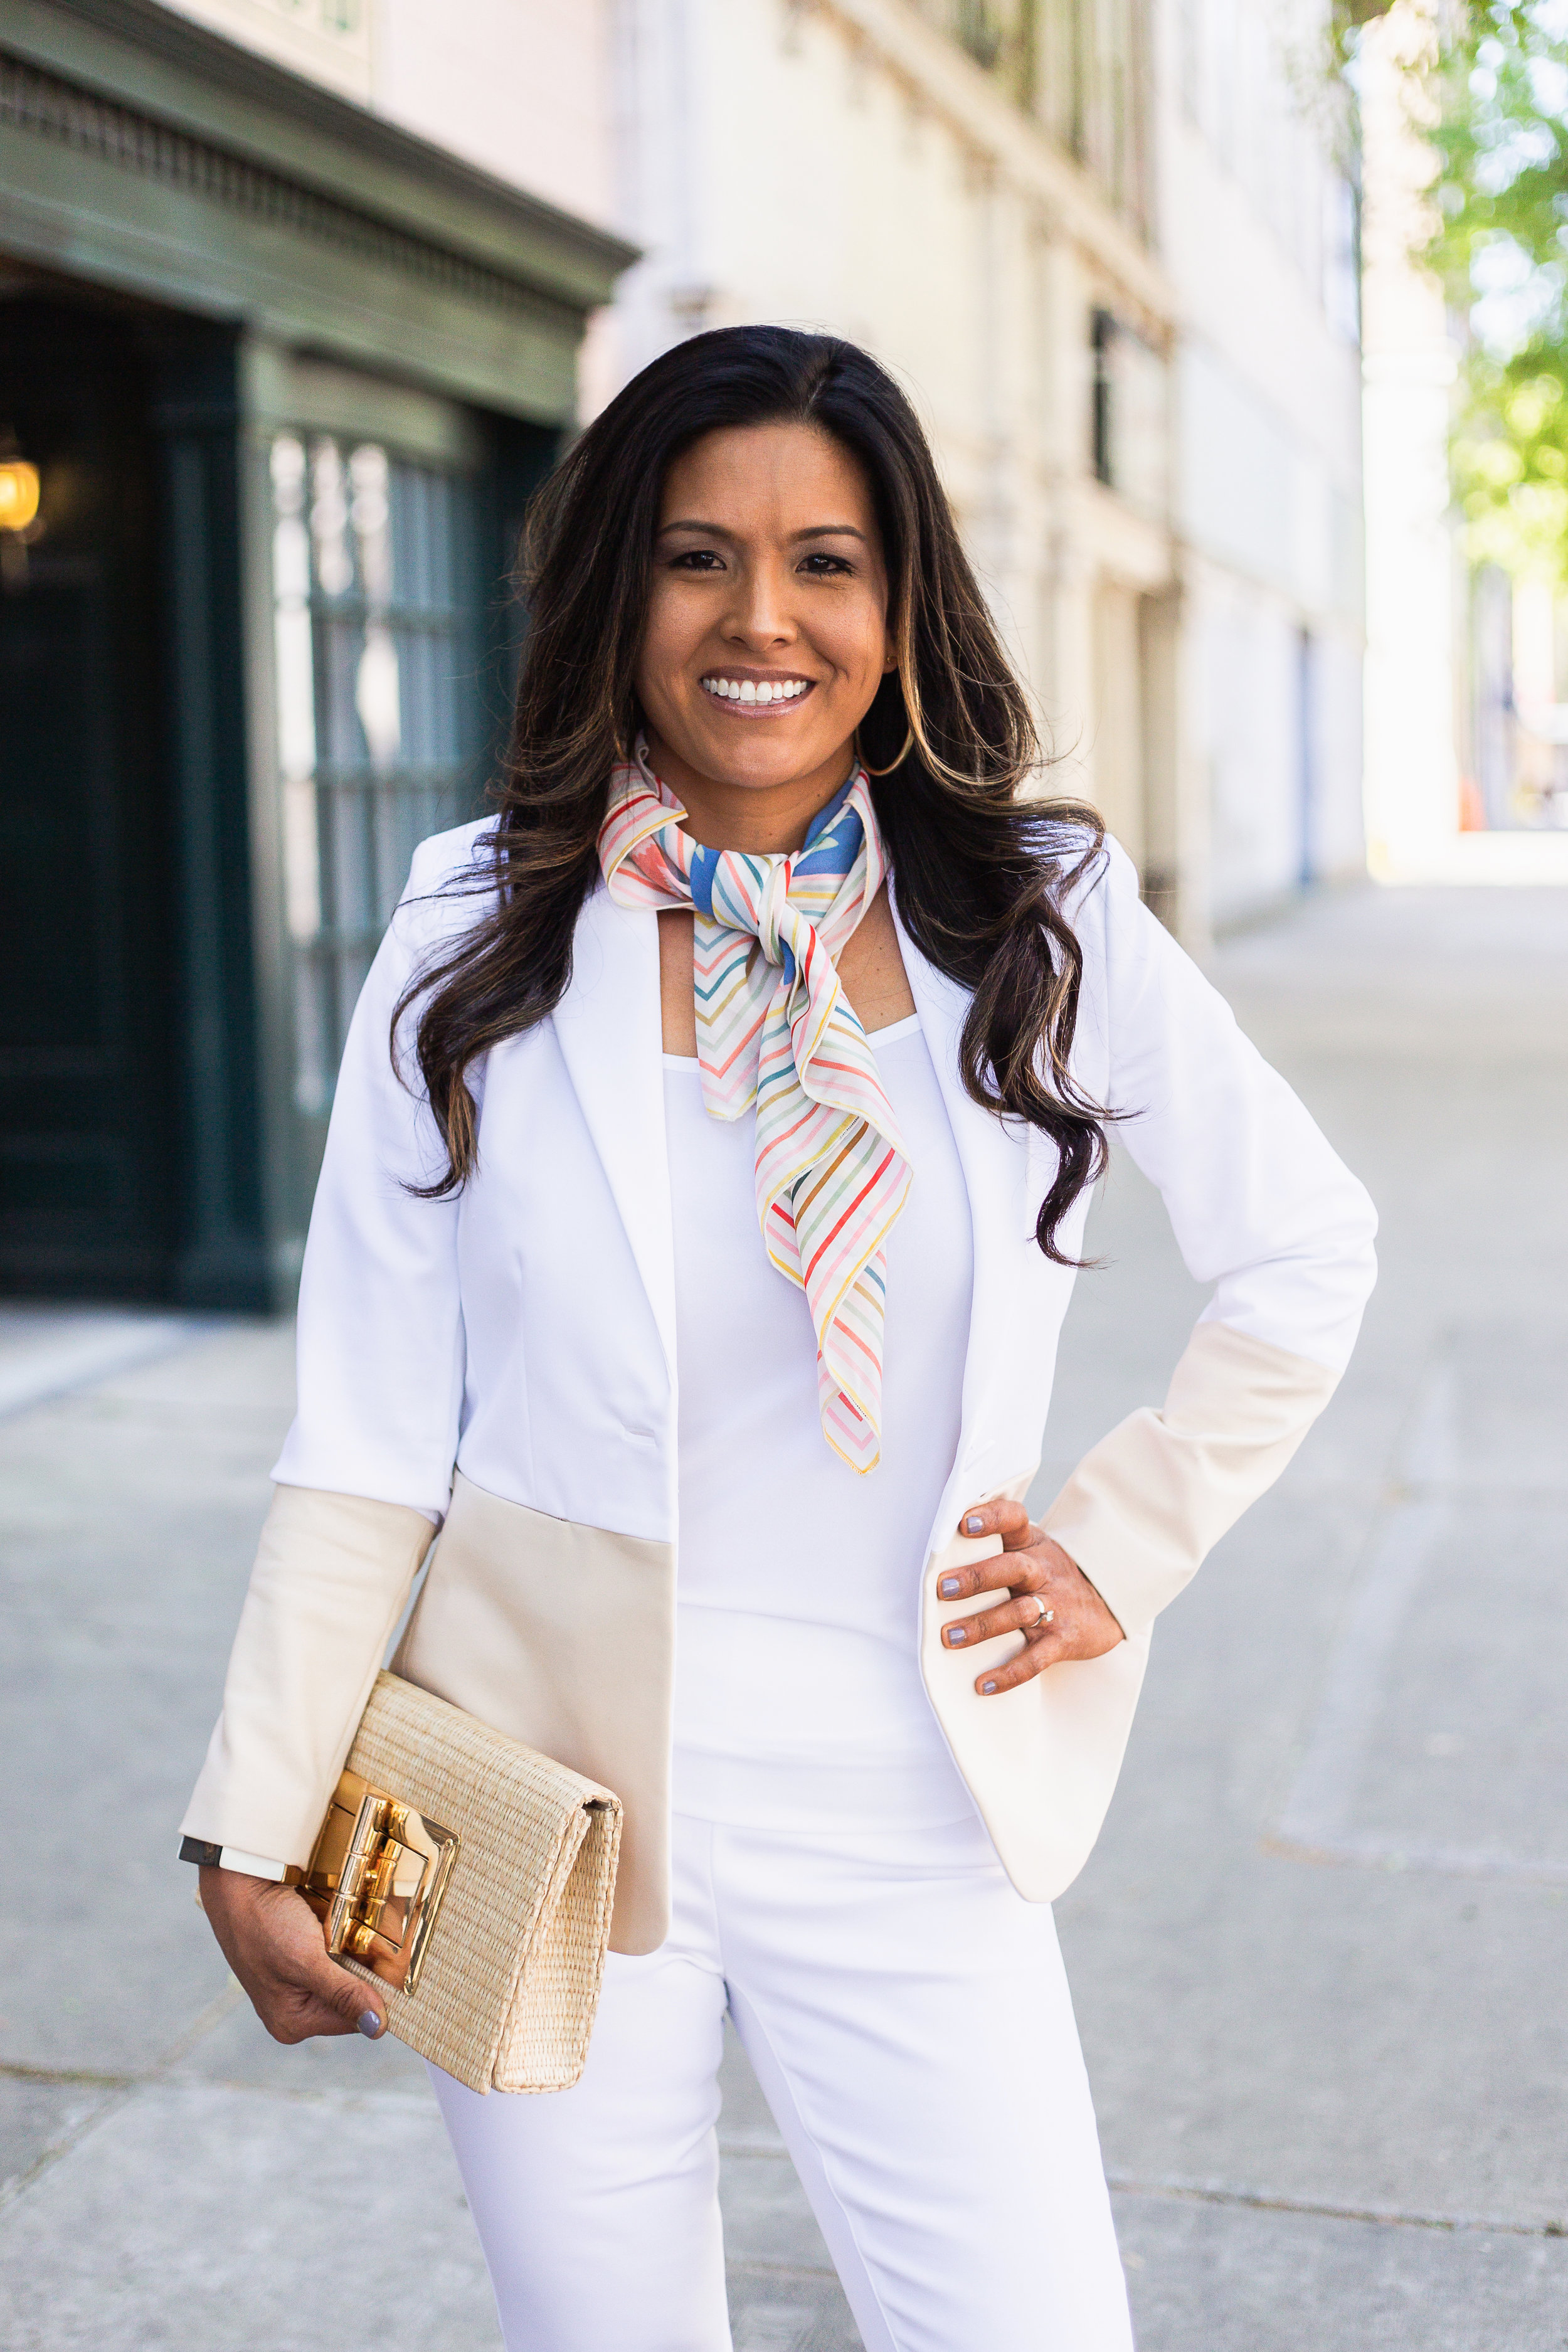 Gardelle Lewis - I highly recommend Brittany's for ladies clothing. Since this fine store opened, I can find clothes for my wife here that I used to travel to Atlanta to get. The quality is just as good and the prices are better for what you are getting! Sybil Surrett is a joy to work with and she did an outstanding job assisting me. My wife loved everything that I bought her so I did not have to return anything!